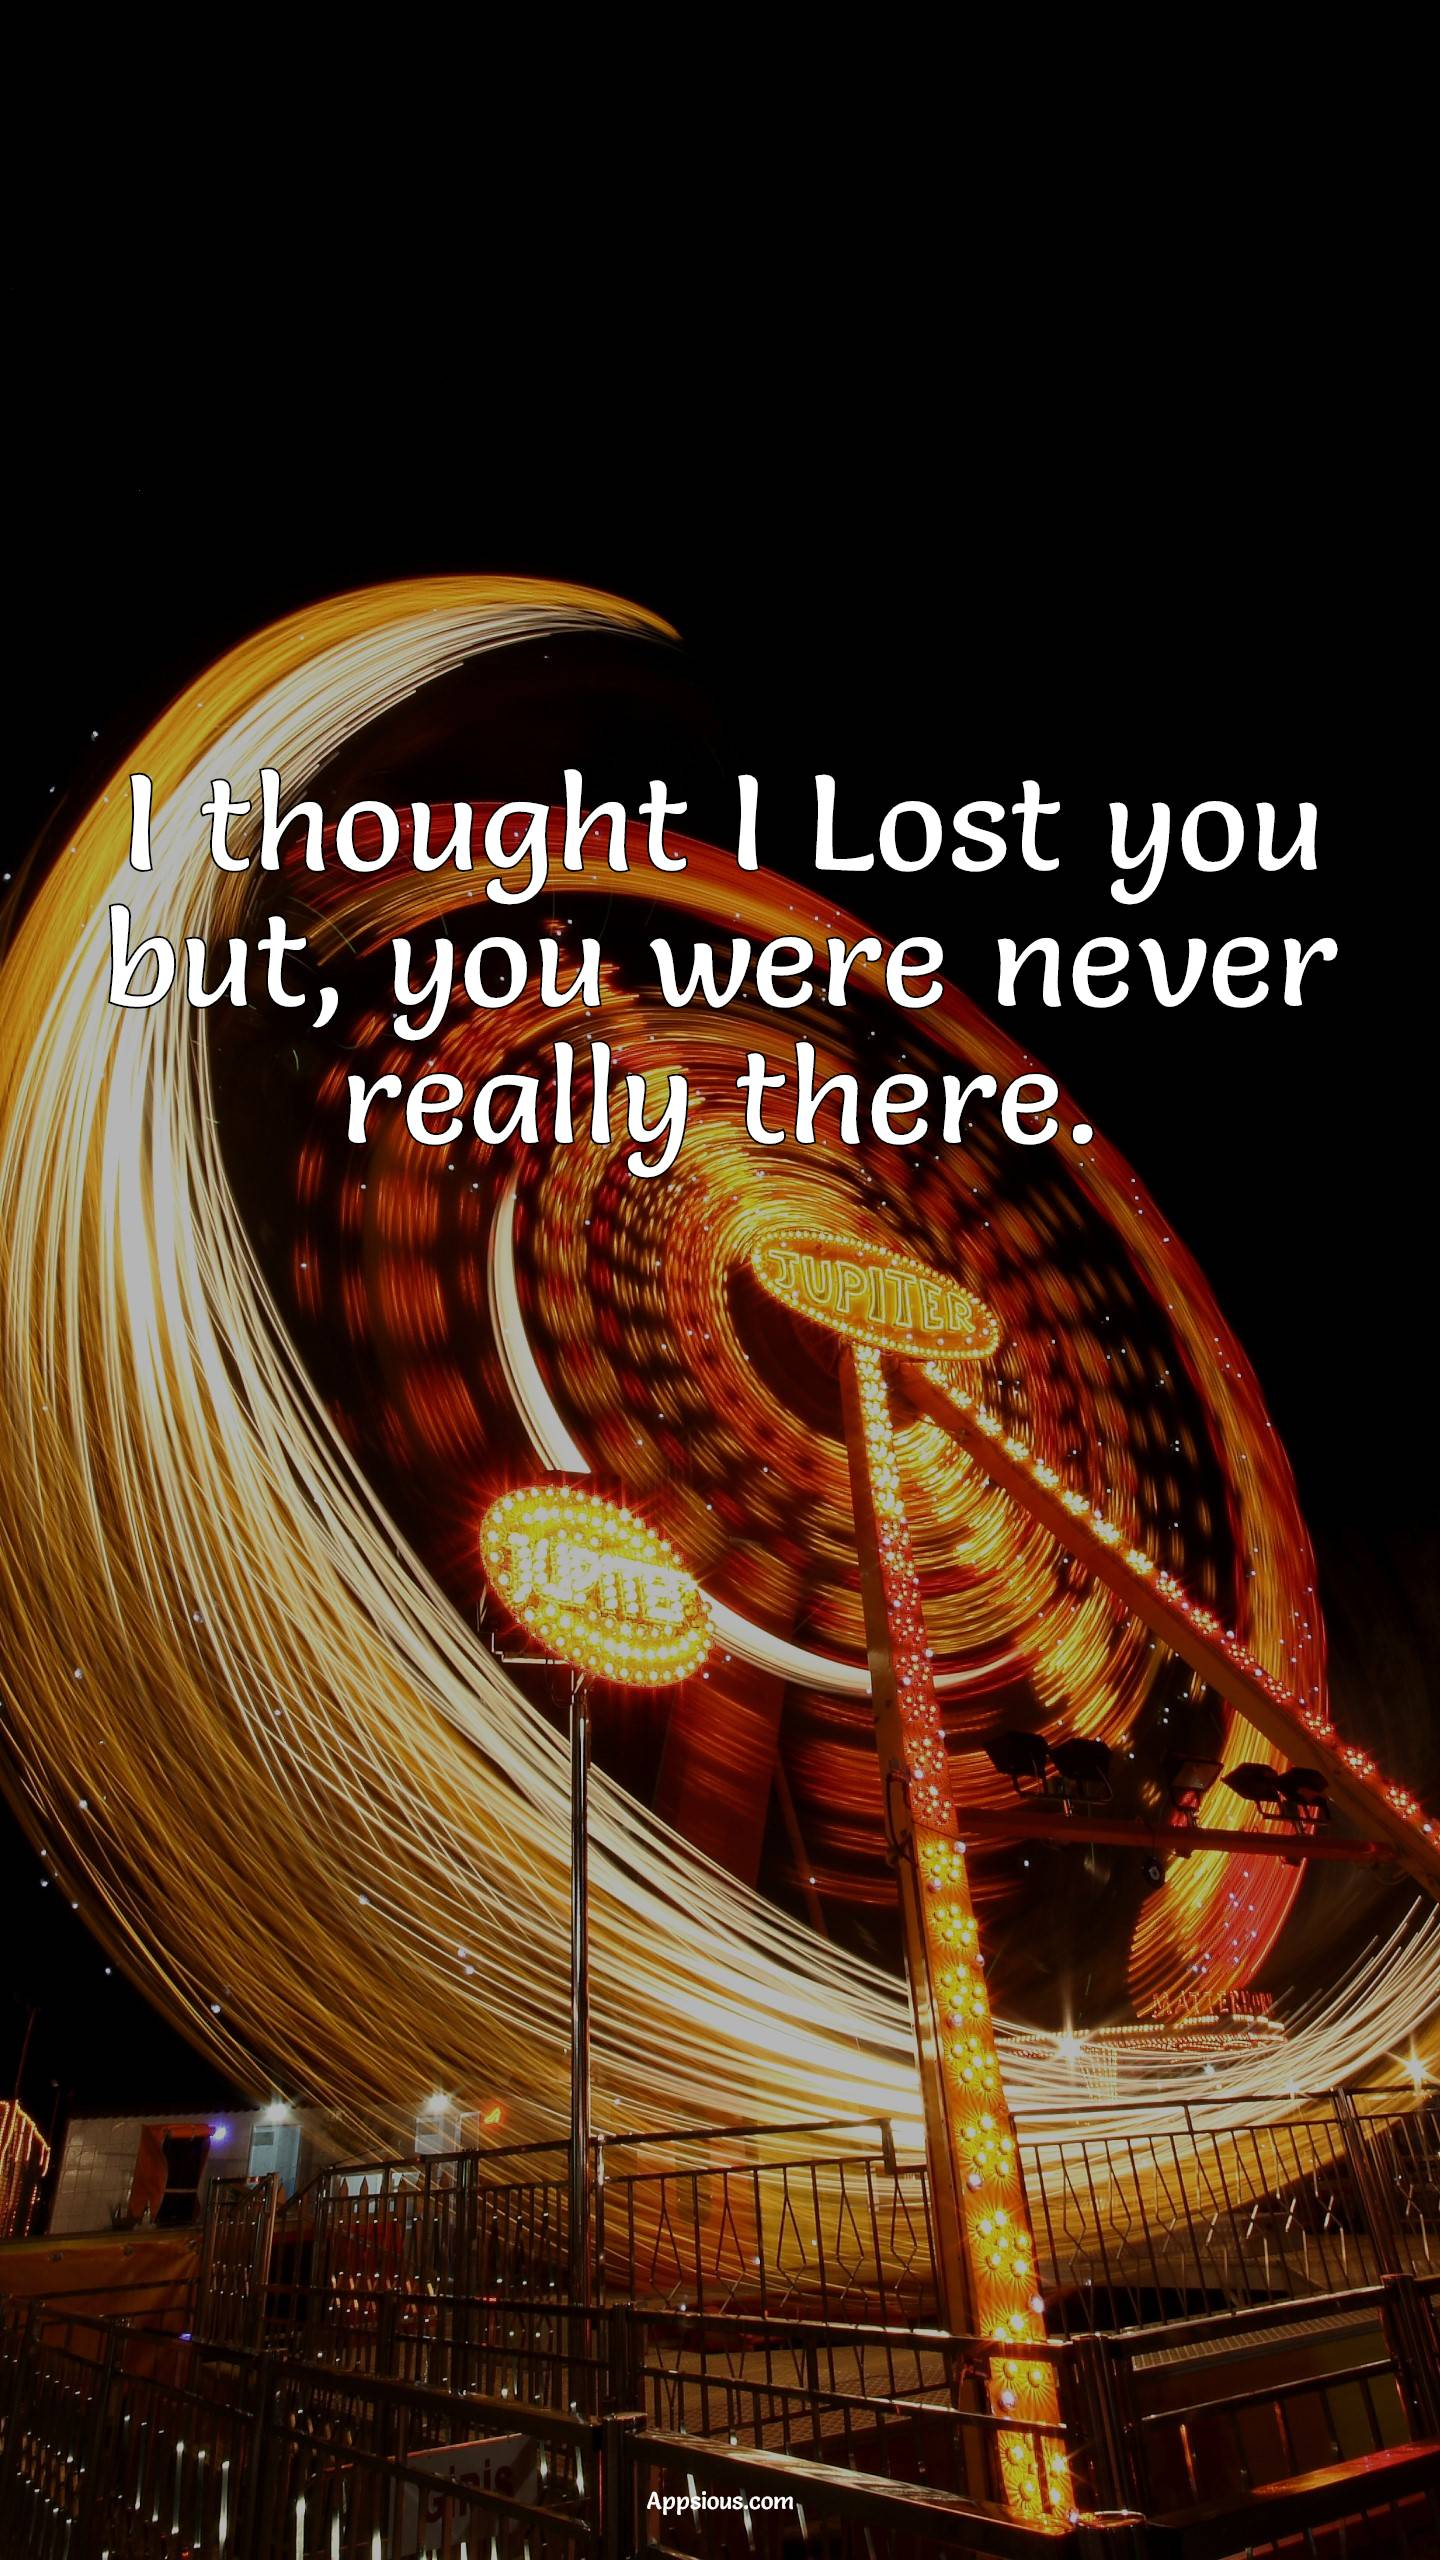 I thought I Lost you but, you were never really there.